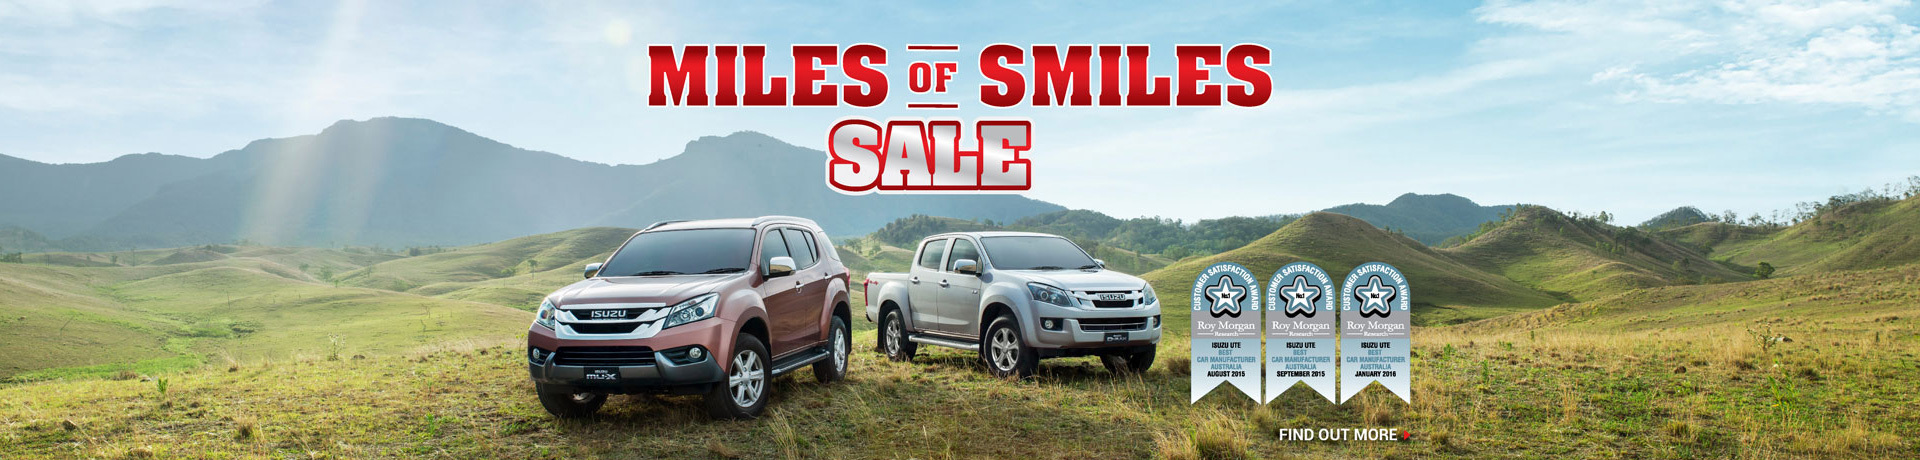 Isuzu National Offer - Miles of Smiles Sale